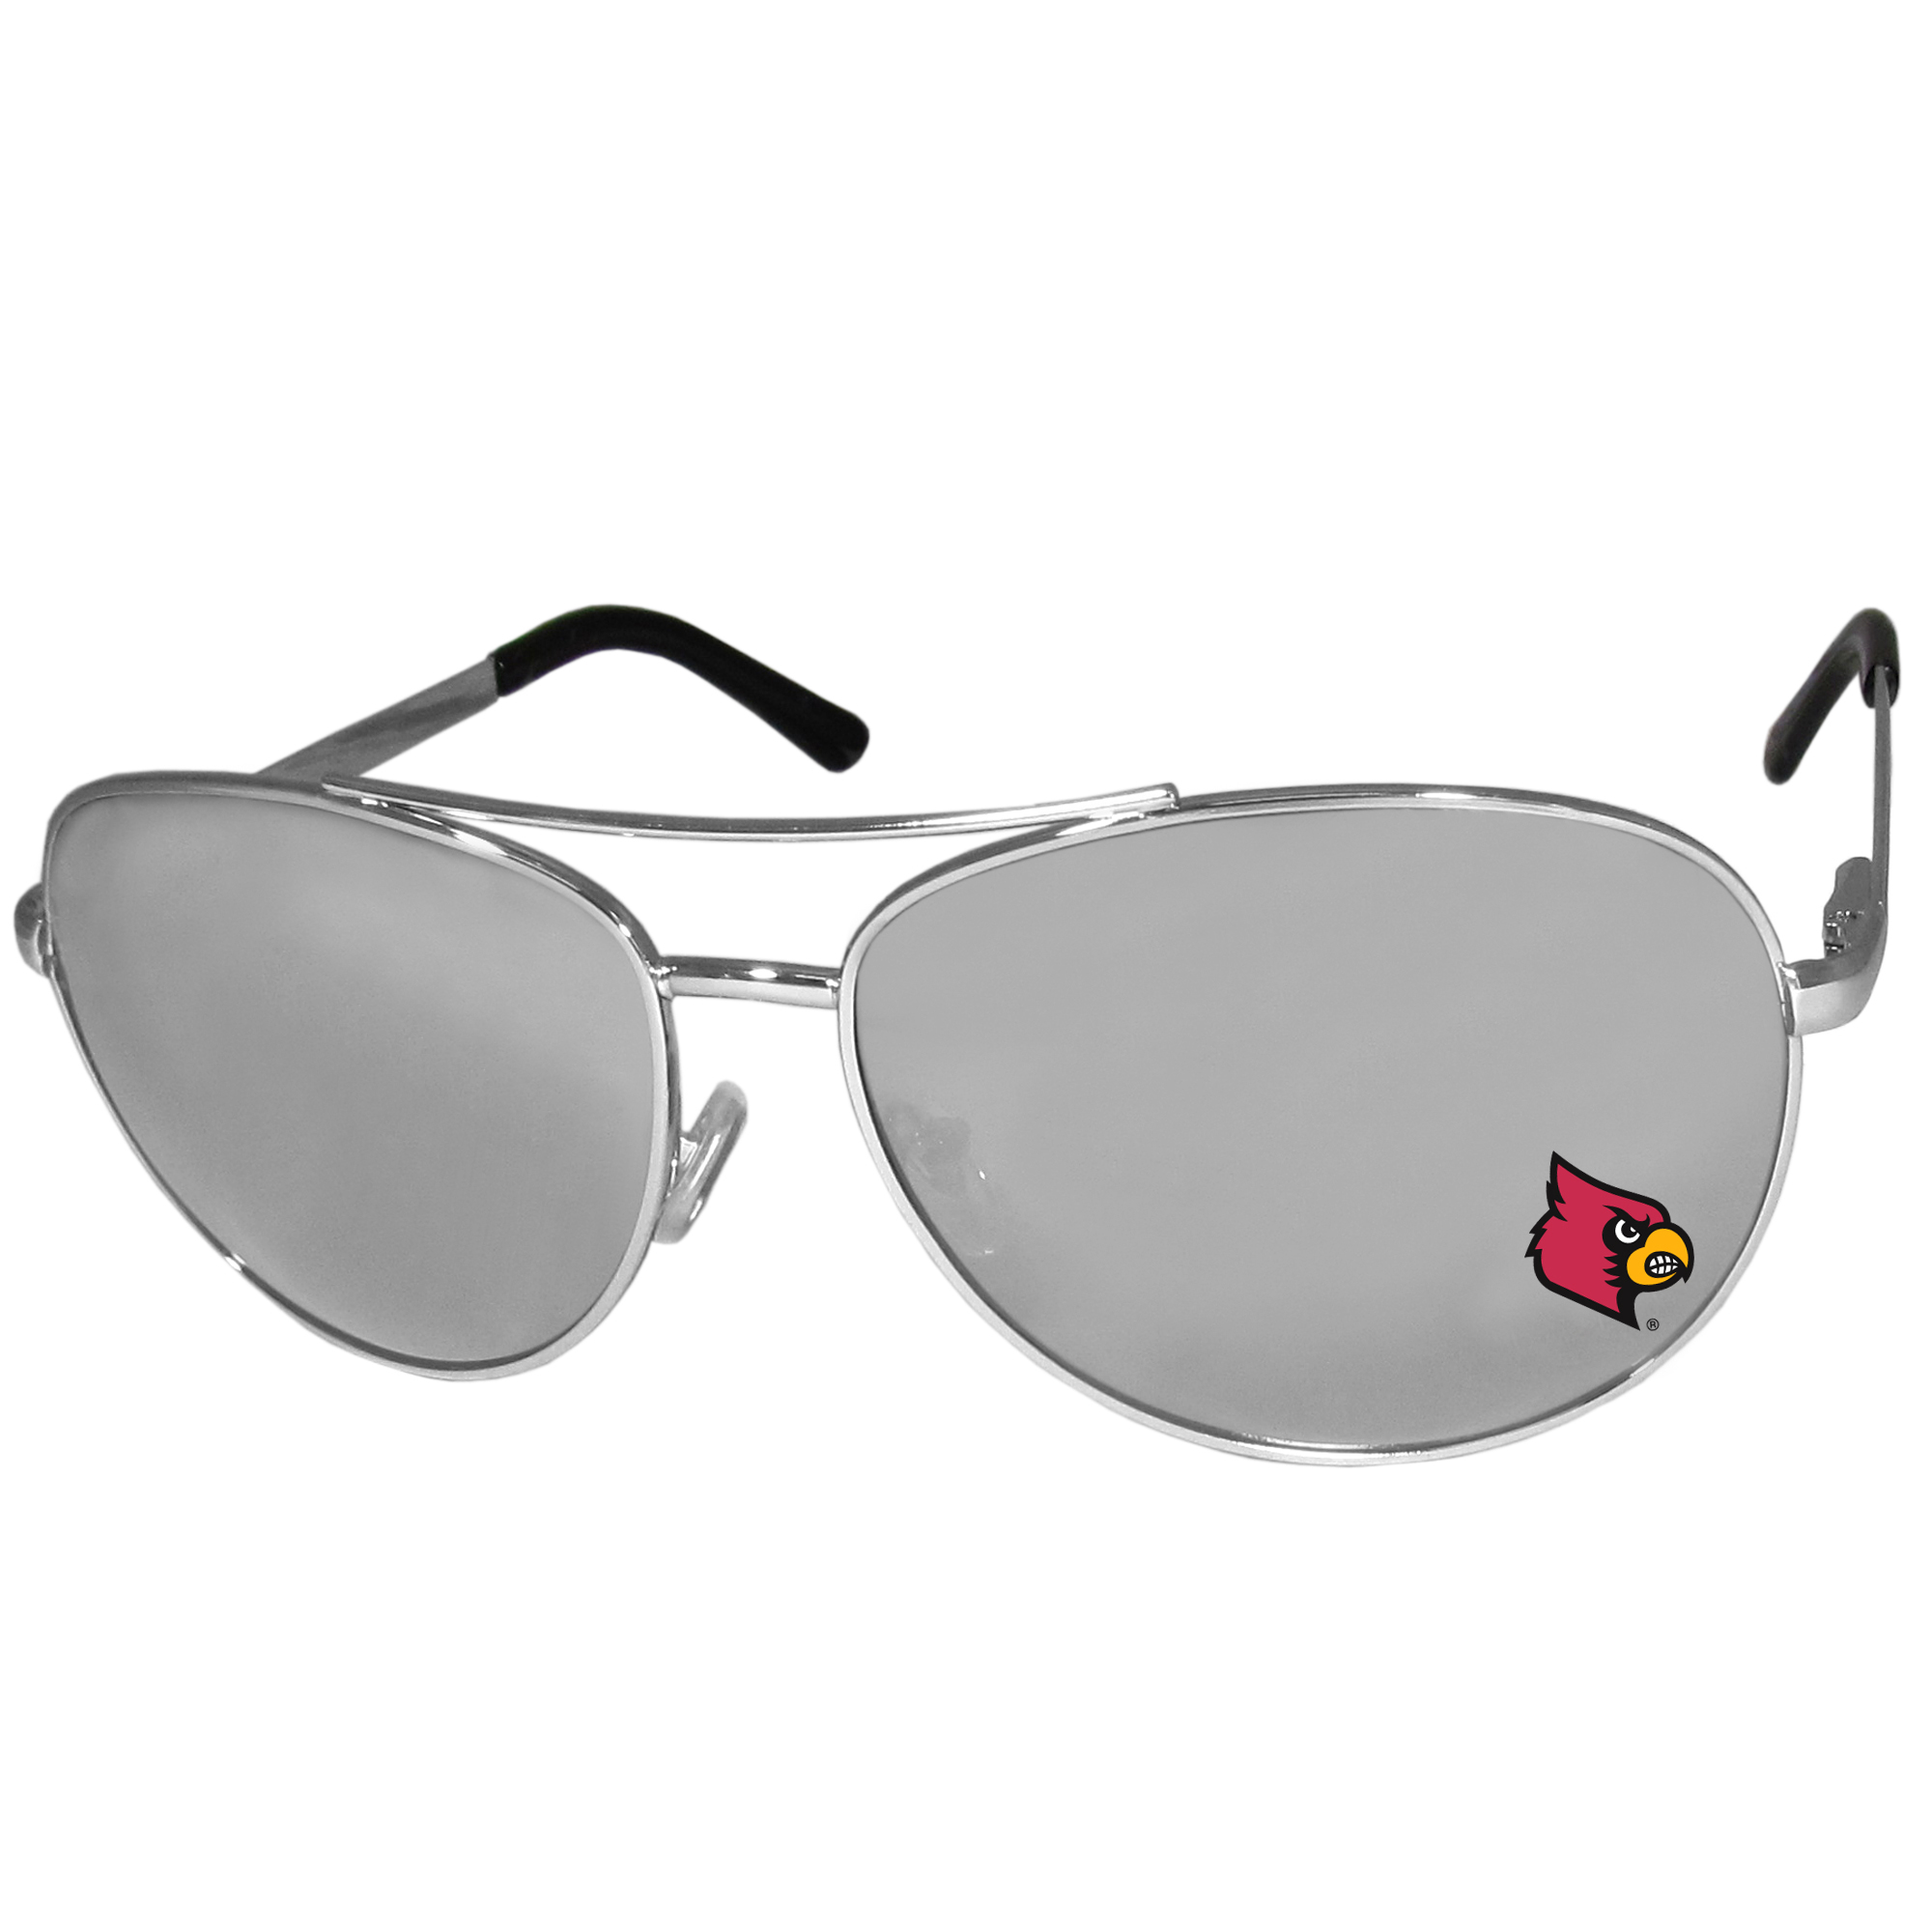 Louisville Cardinals Aviator Sunglasses - Our aviator sunglasses have the iconic aviator style with mirrored lenses and metal frames. The glasses feature a silk screened Louisville Cardinals logo in the corner of the lense. 100% UVA/UVB protection.